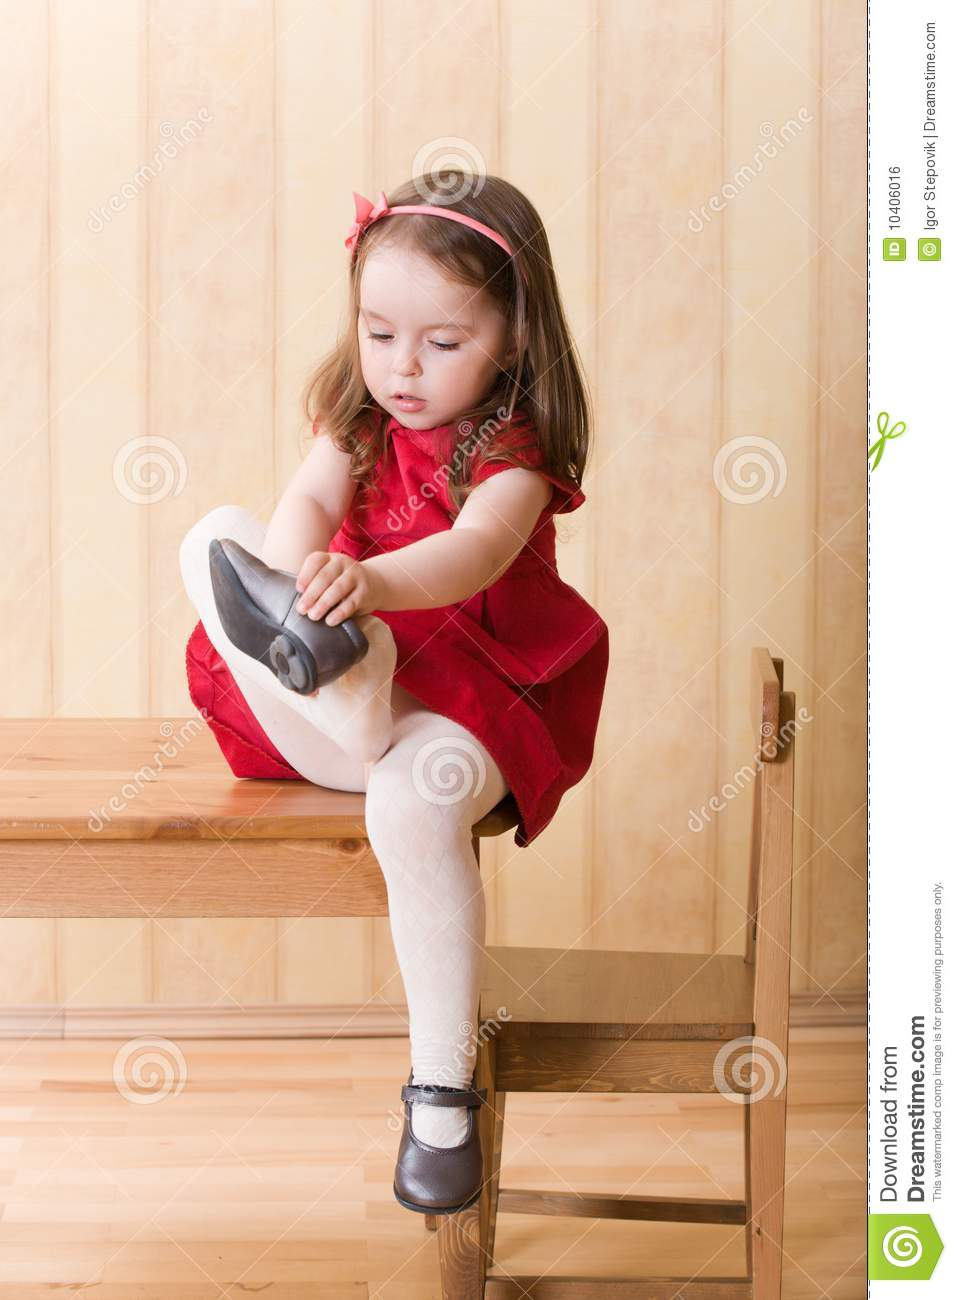 Girl Sitting On Table And Put On One's Shoes Stock Photo ...